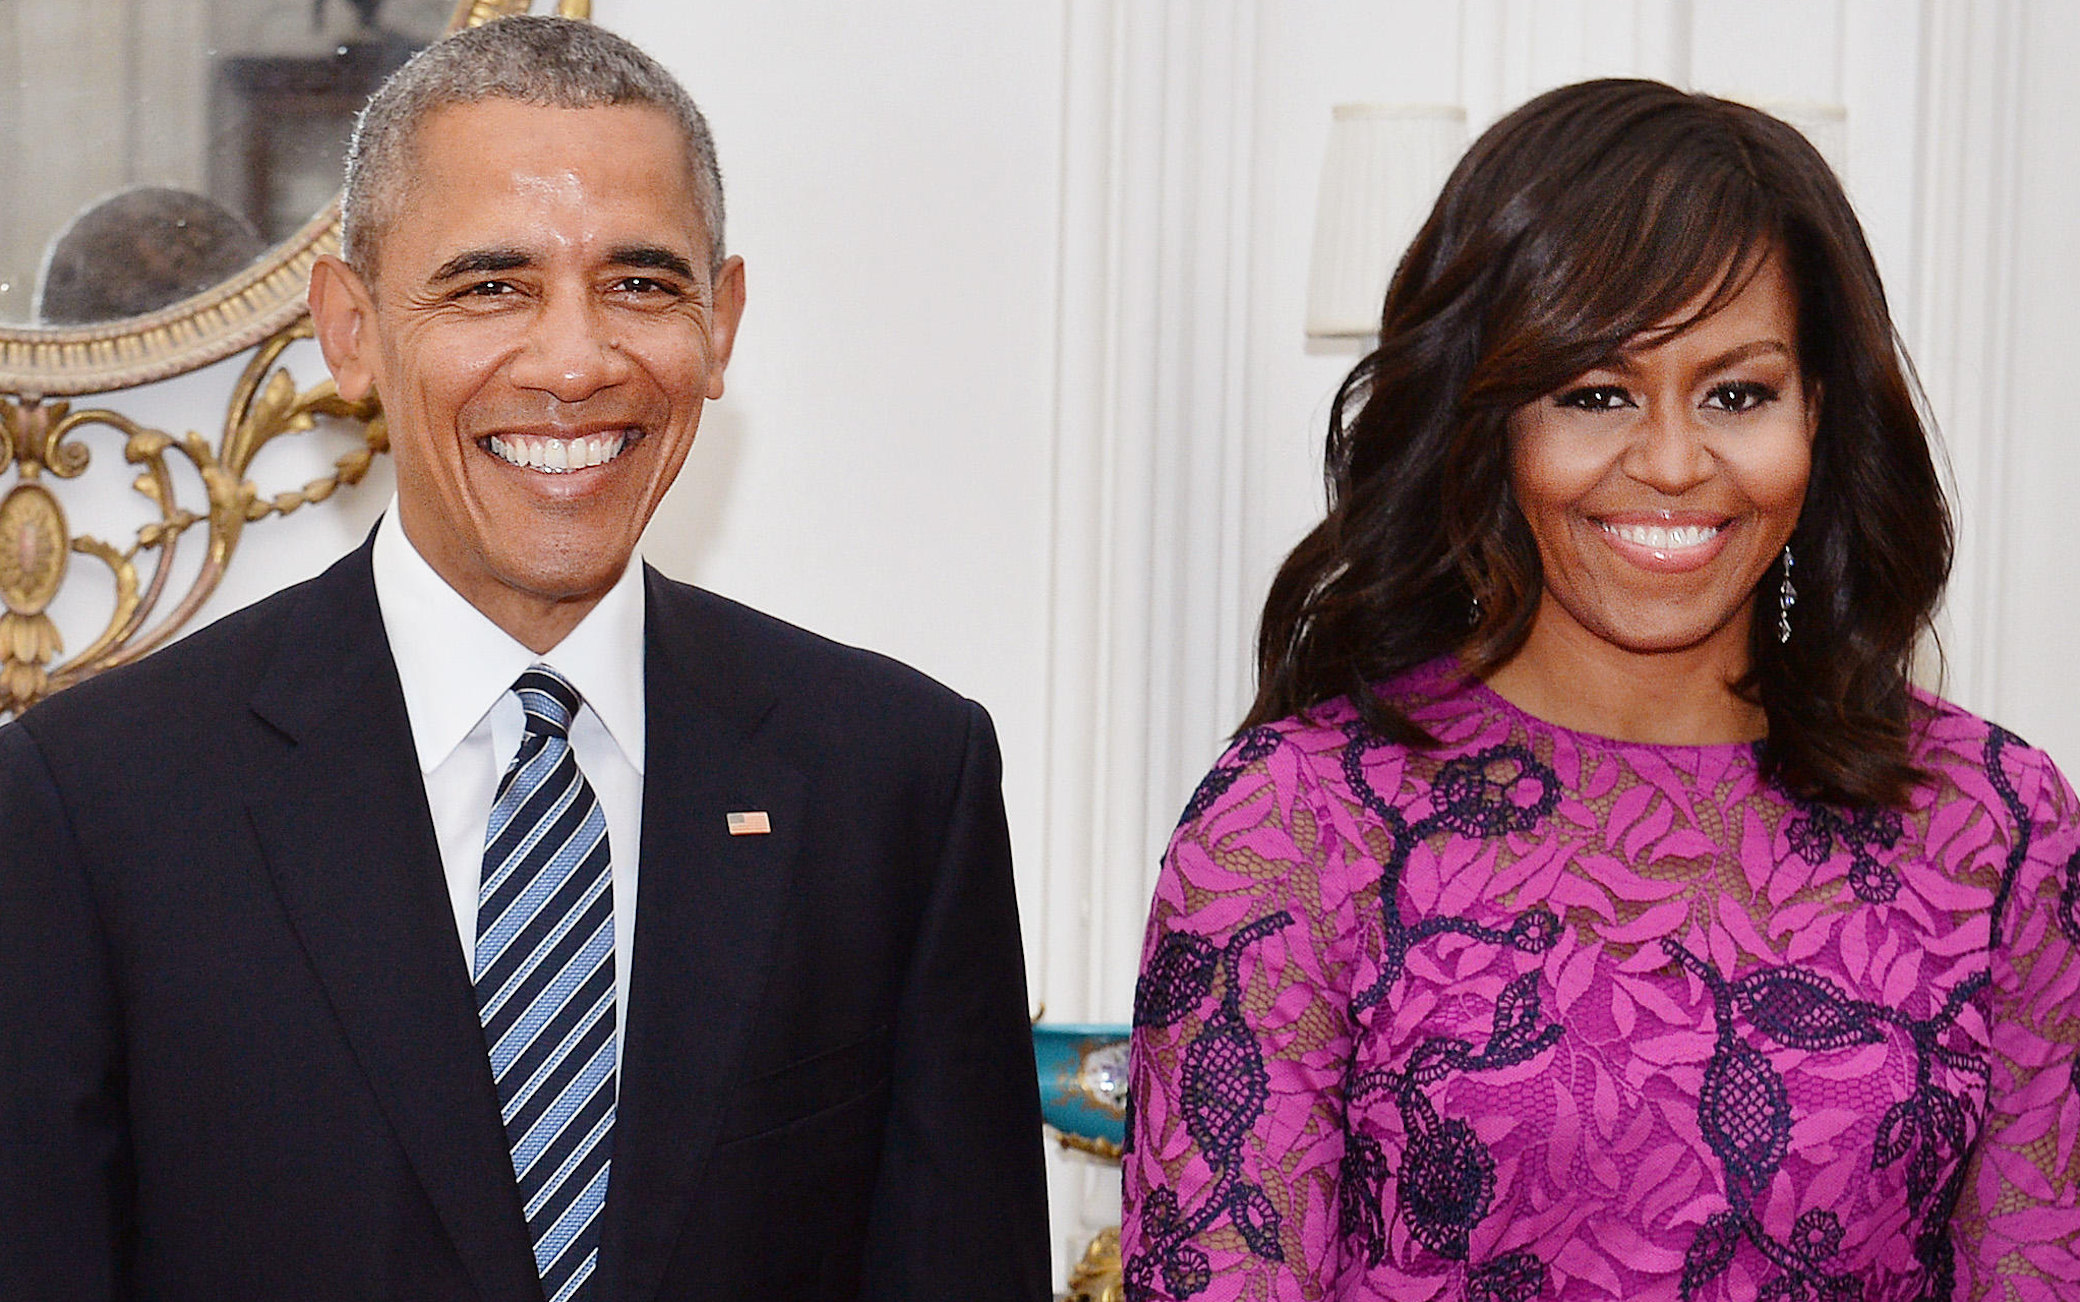 Barack and Michelle Obama produce TV series, New TV Movies, and Documentary Series on Netflix